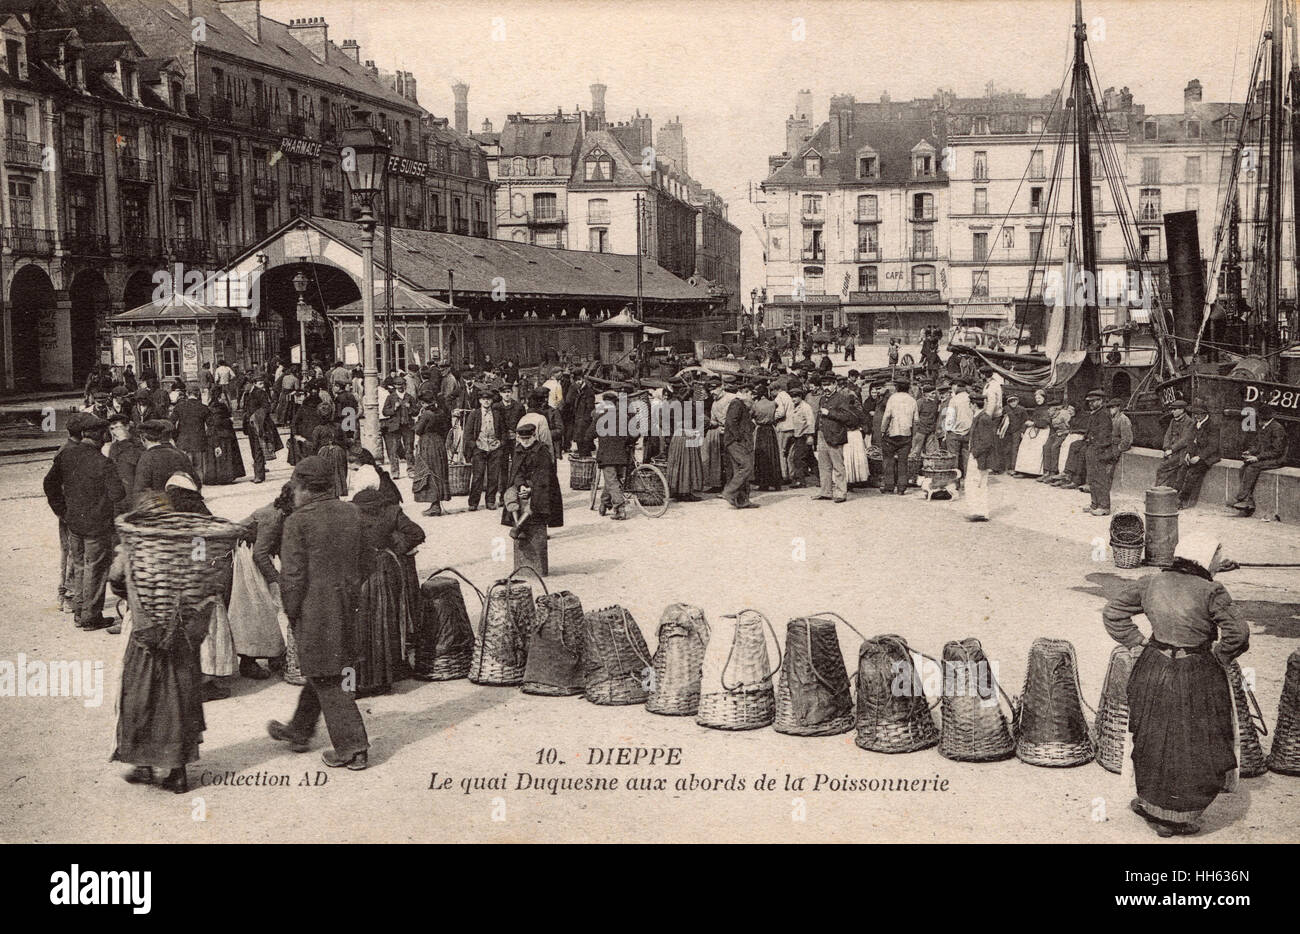 Dieppe - The Duquesne Quay - Fishmongers and Fishwives. - Stock Image